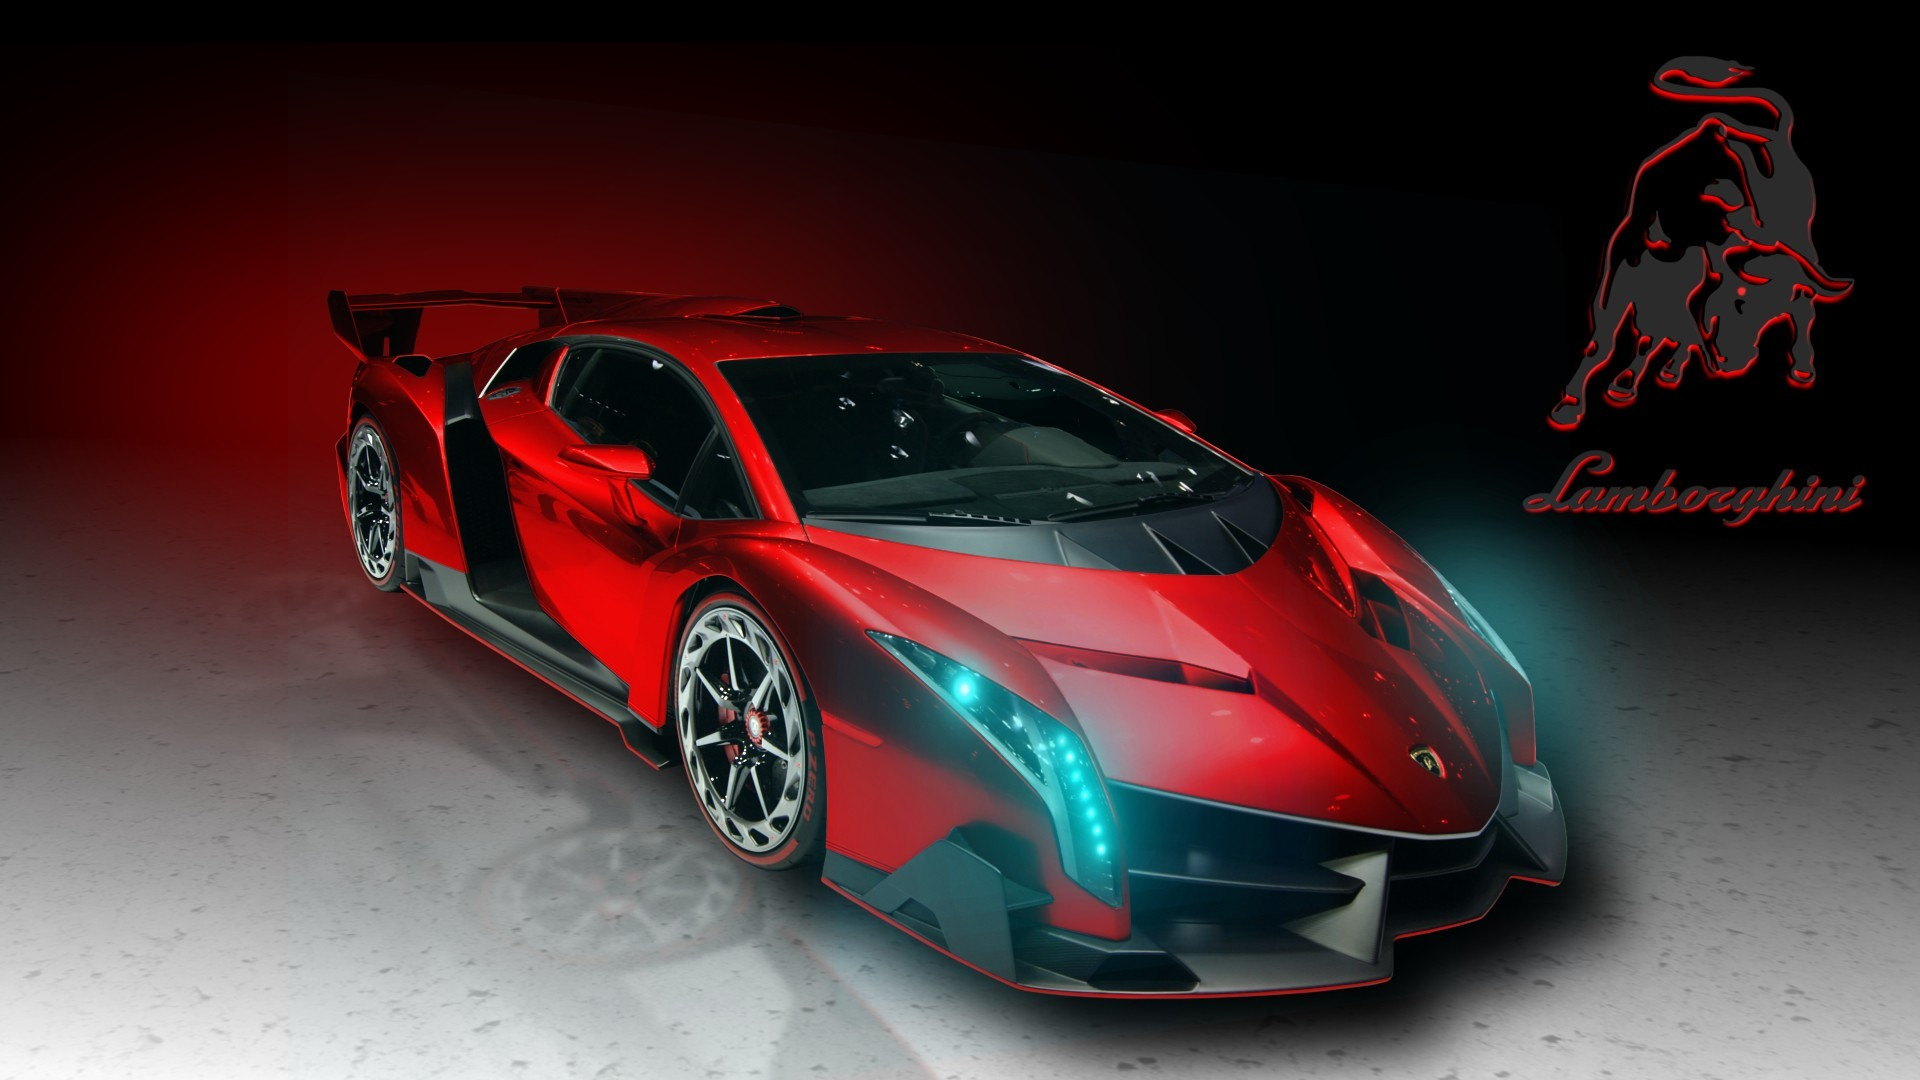 1920x1080 Lamborghini Veneno Wallpaper HD | Lamborghini Veneno 2013 Sports Car  Background HD Wallpaper Lamborghini .